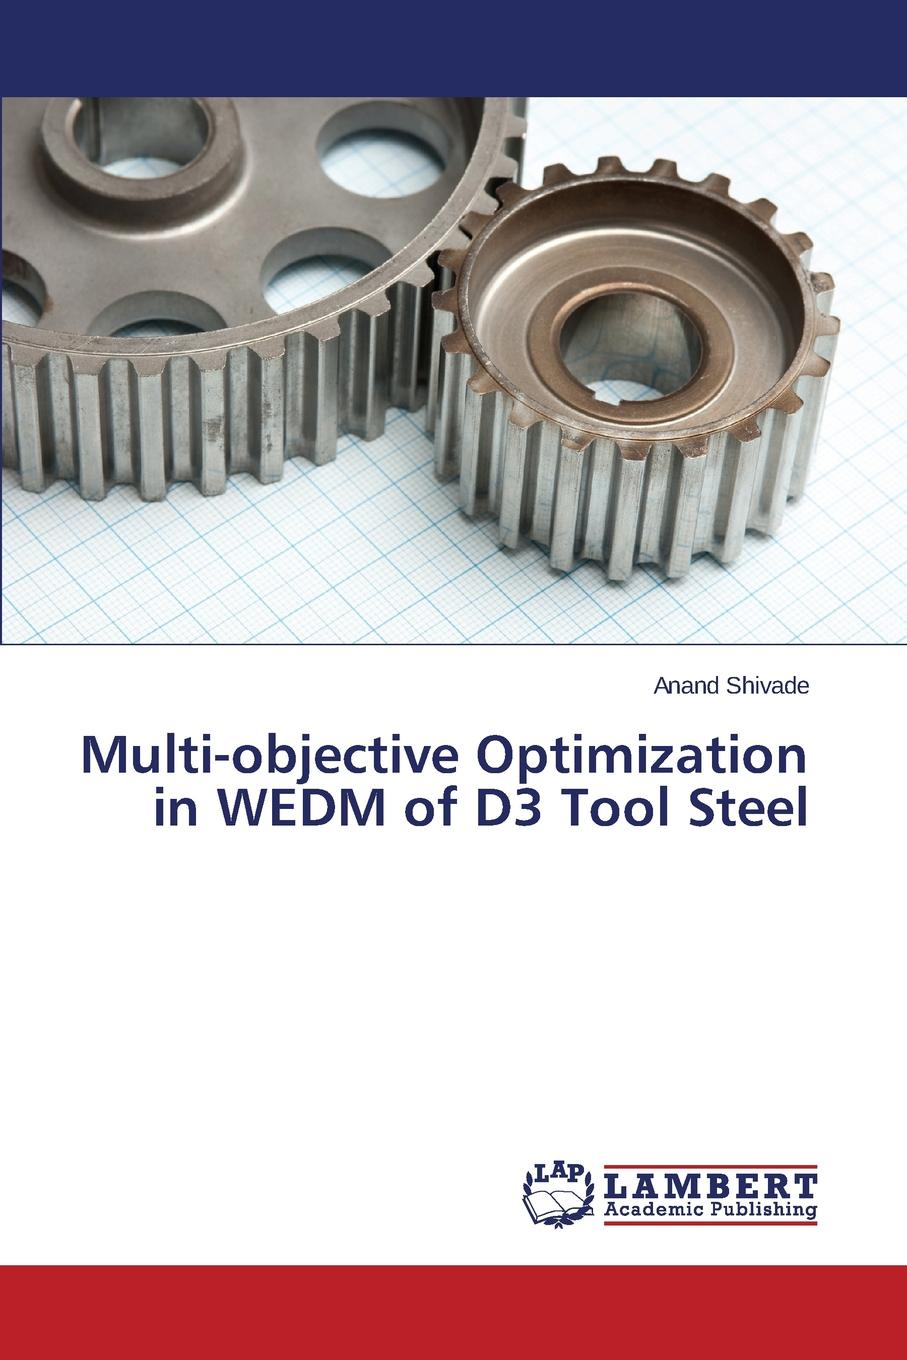 Shivade Anand Multi-objective Optimization in WEDM of D3 Tool Steel subir chowdhury shin taguchi robust optimization world s best practices for developing winning vehicles